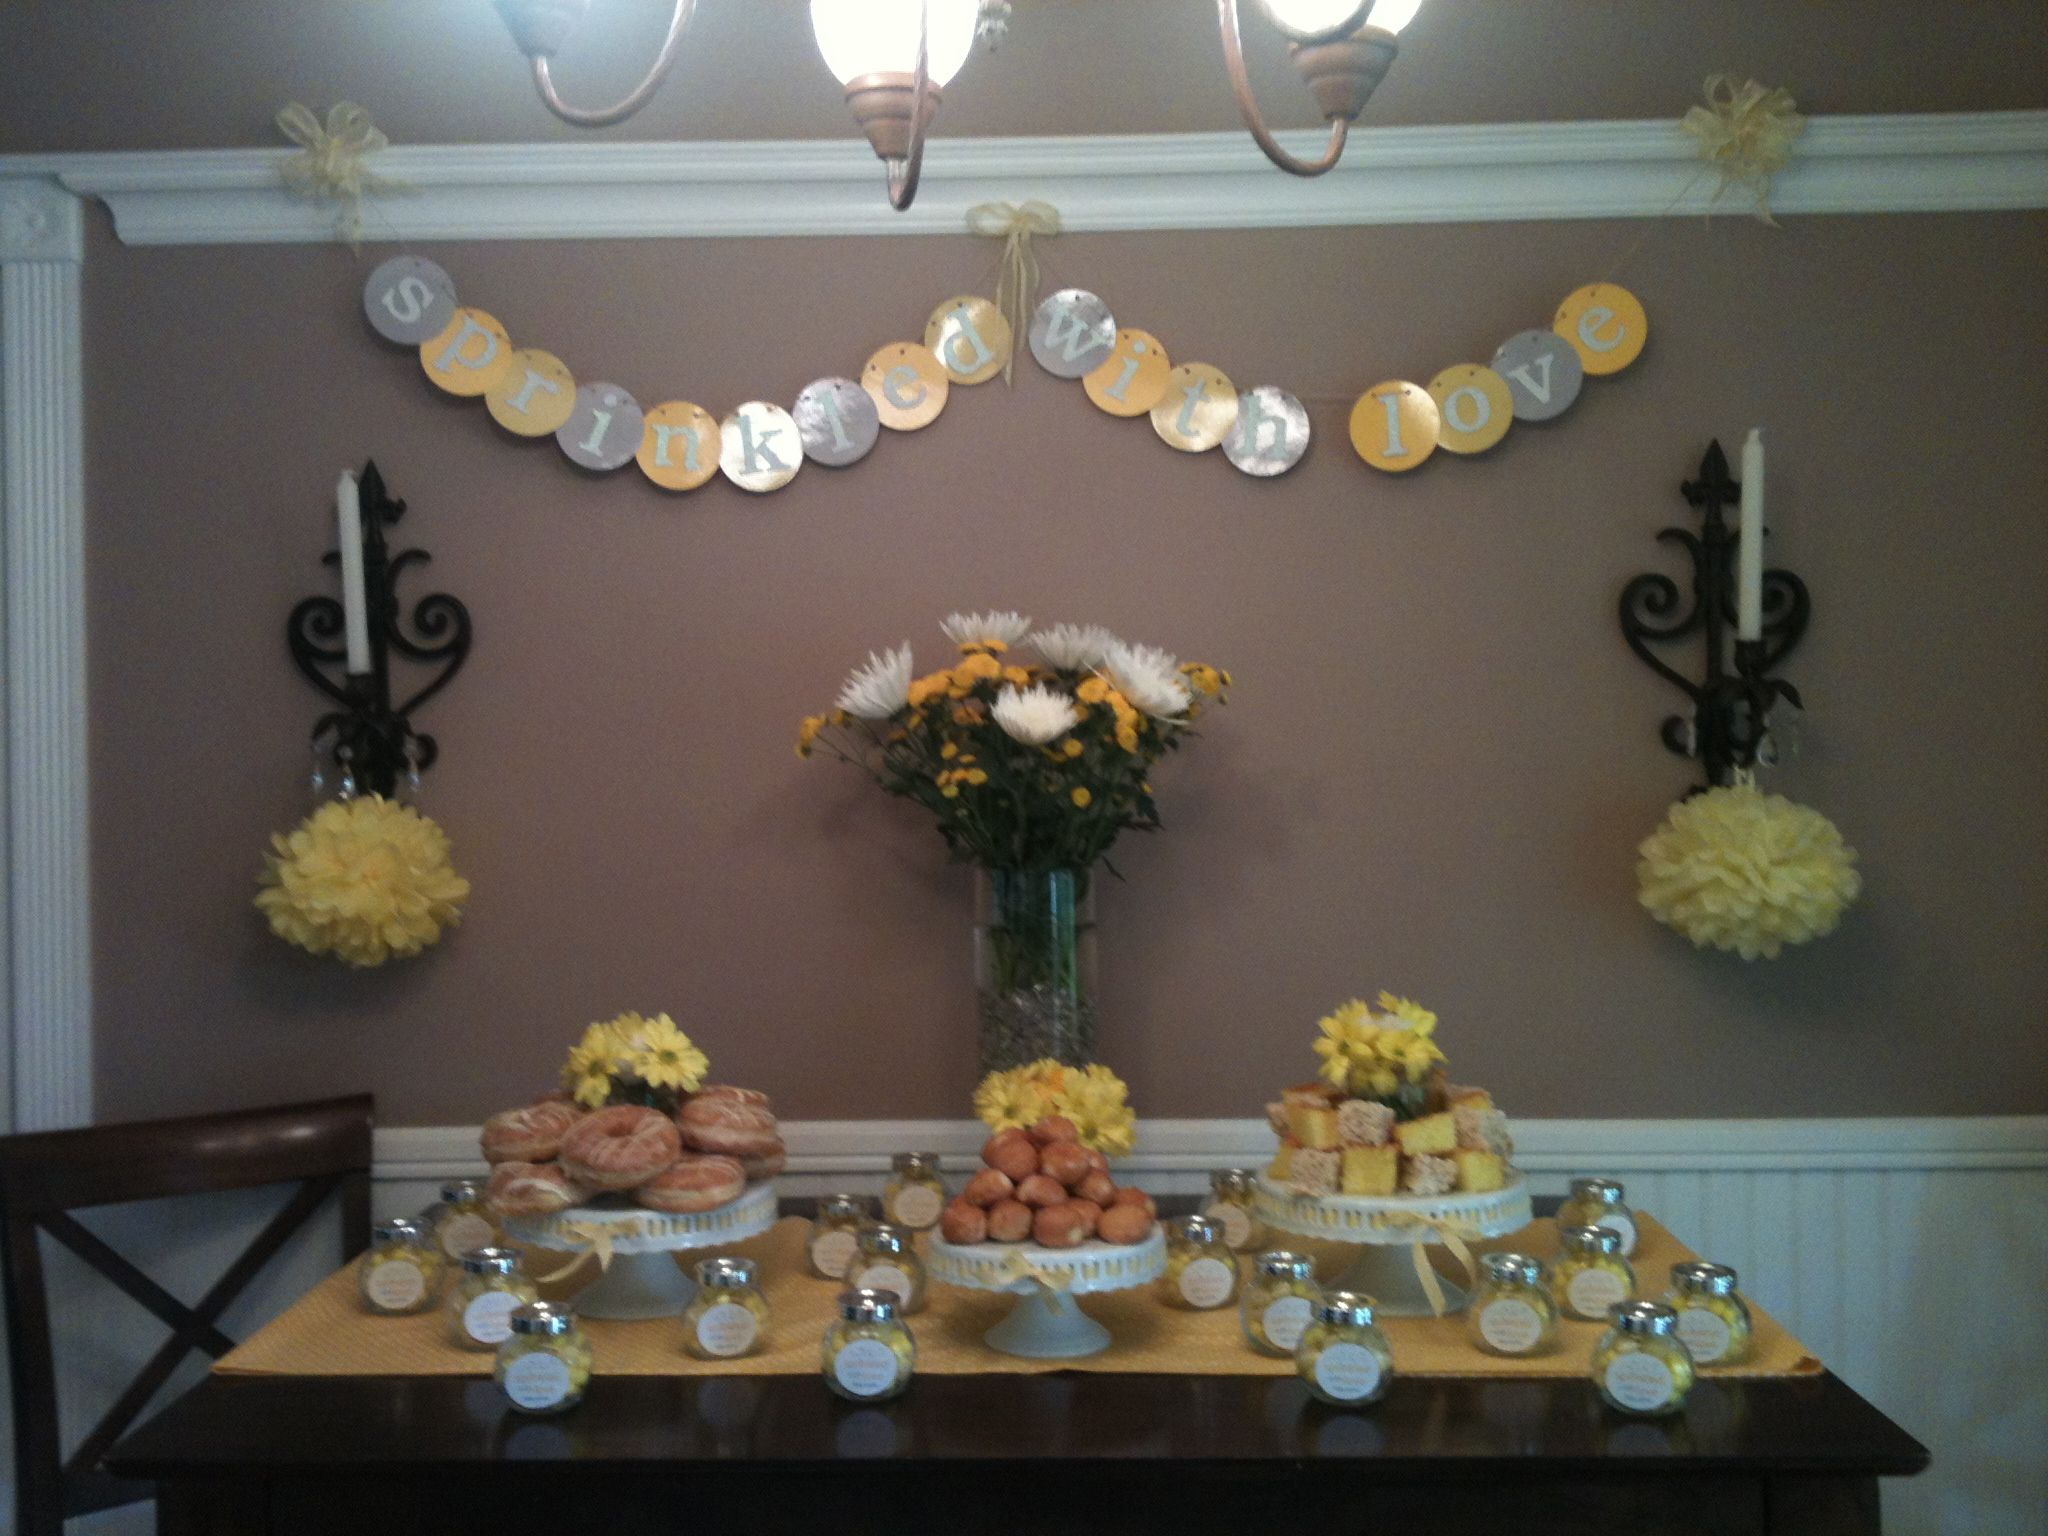 My sister's Sprinkle party. Party for the 3rd kid and we didn't know if it was a boy or girl!  Yellow and grey for the sprinkle baby shower